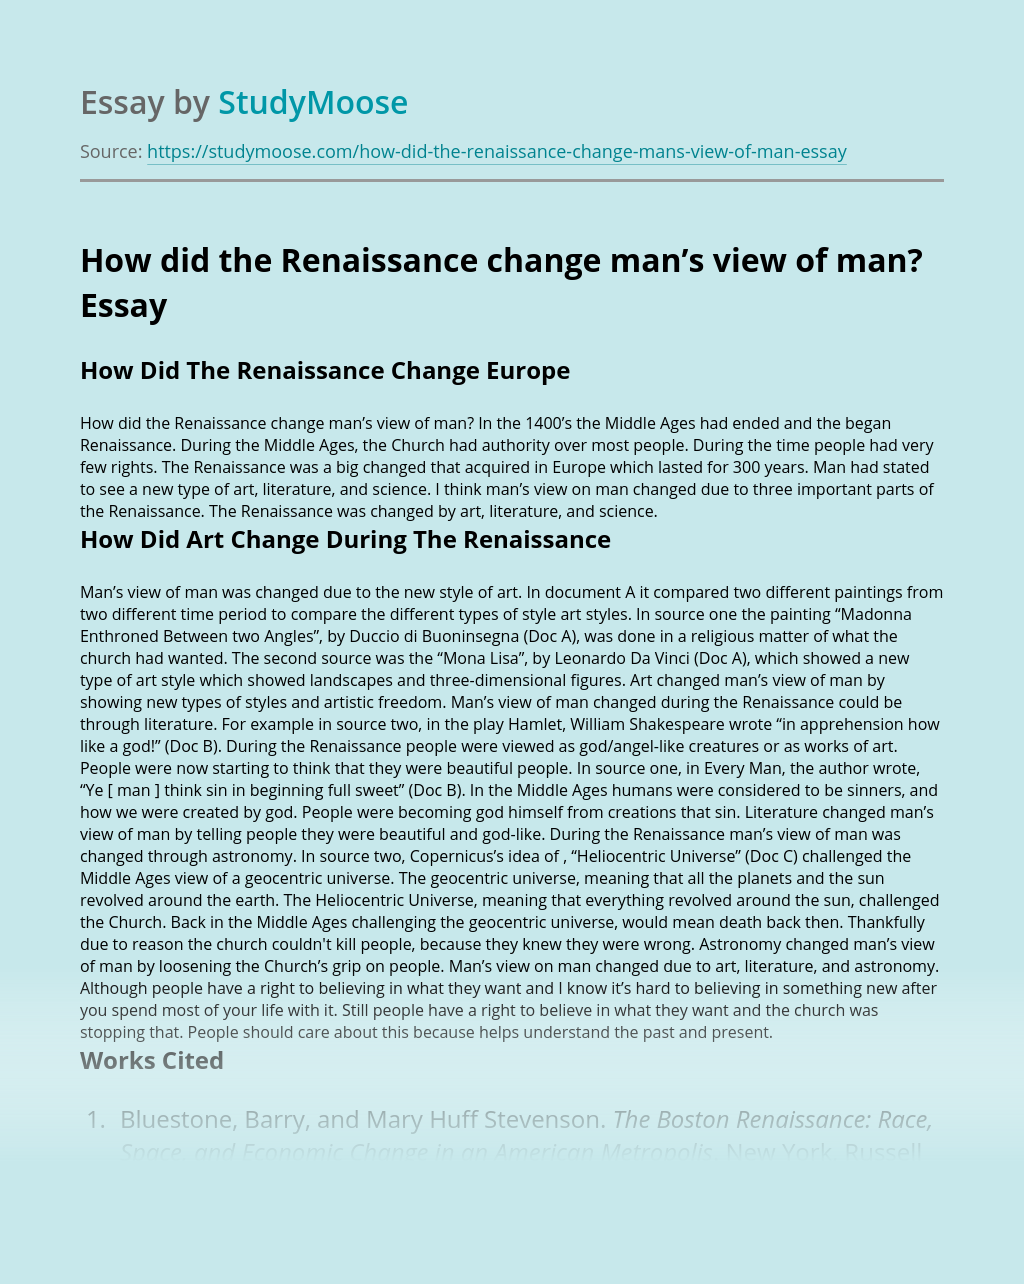 How did the Renaissance change man's view of man?